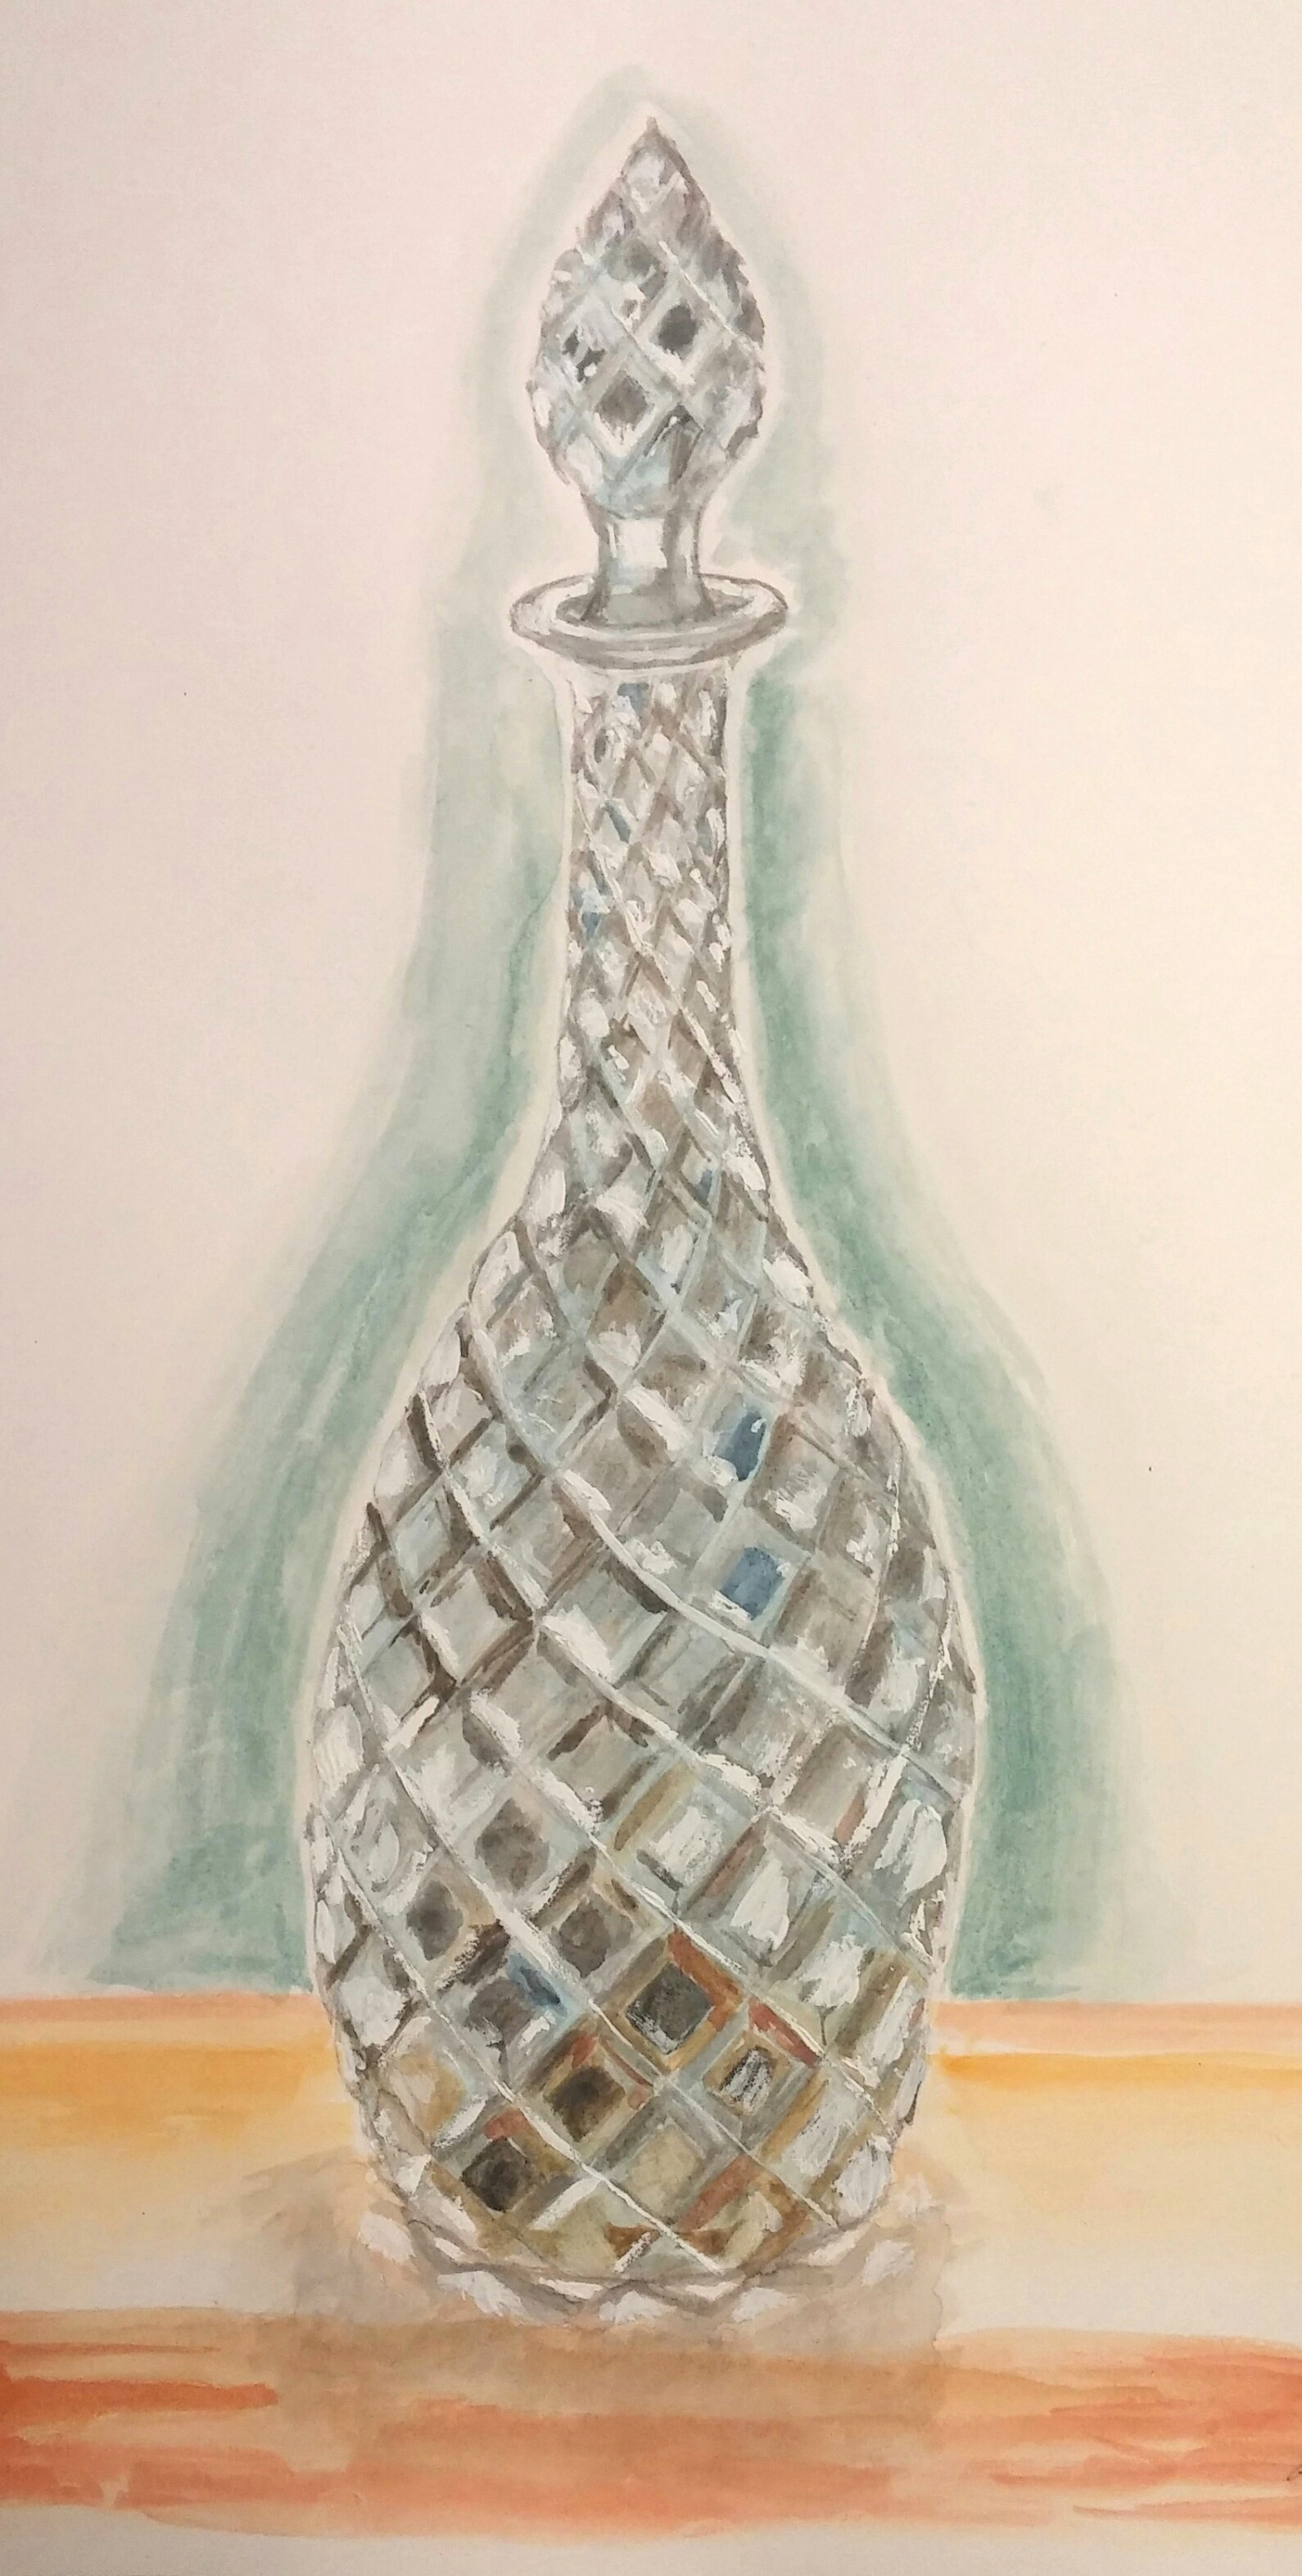 Shiny Vase - Watercolor Experiment